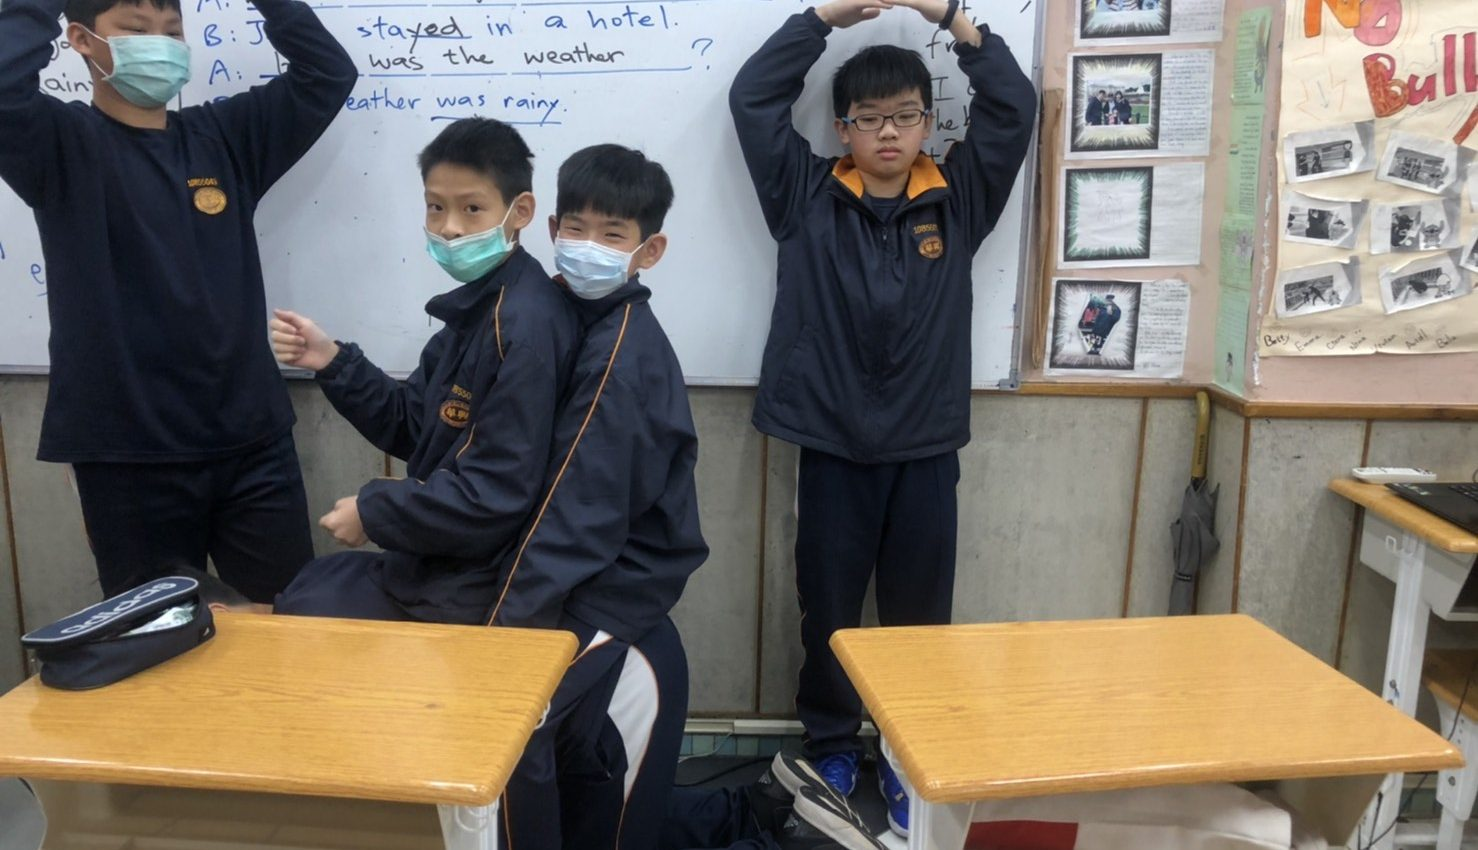 Students in Taiwan as some parts of life go back to some 'normal' ways Photo: Jojo  Tang